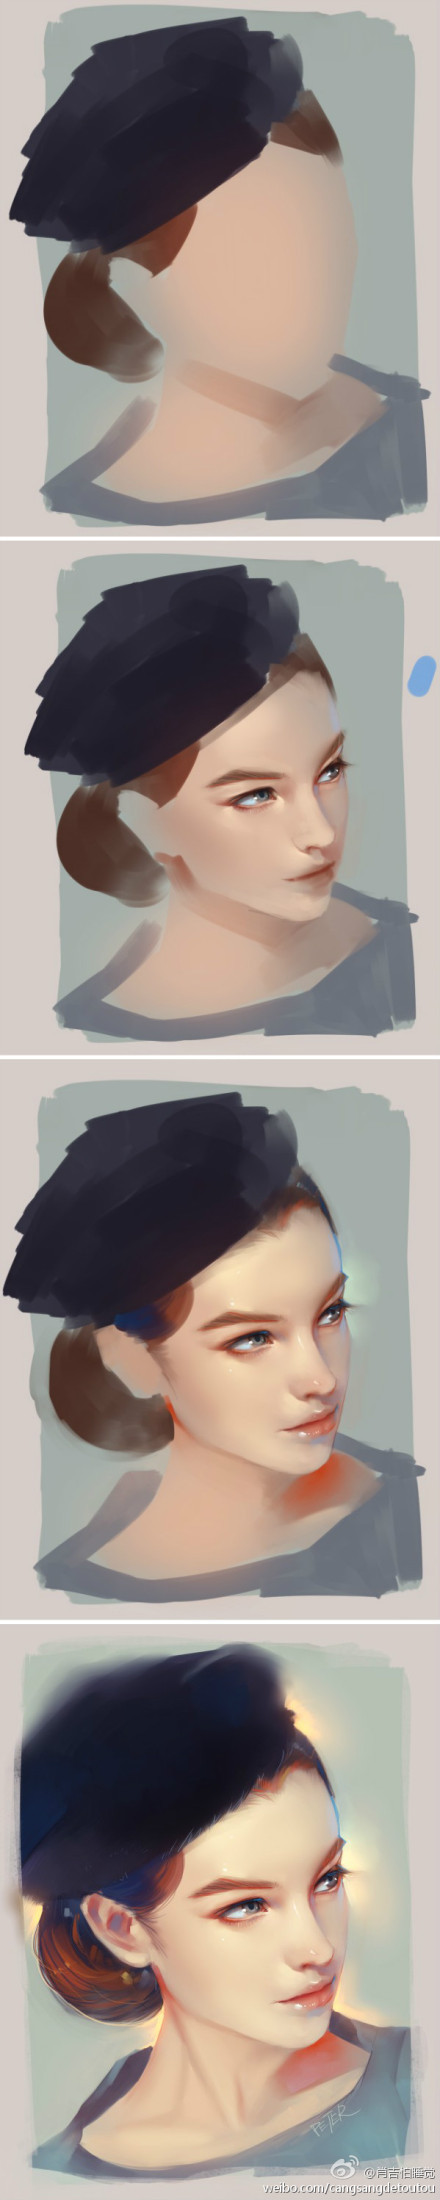 Digital painting process step by step howto tutorial digital painting process step by step howto tutorial photoshop baditri Image collections